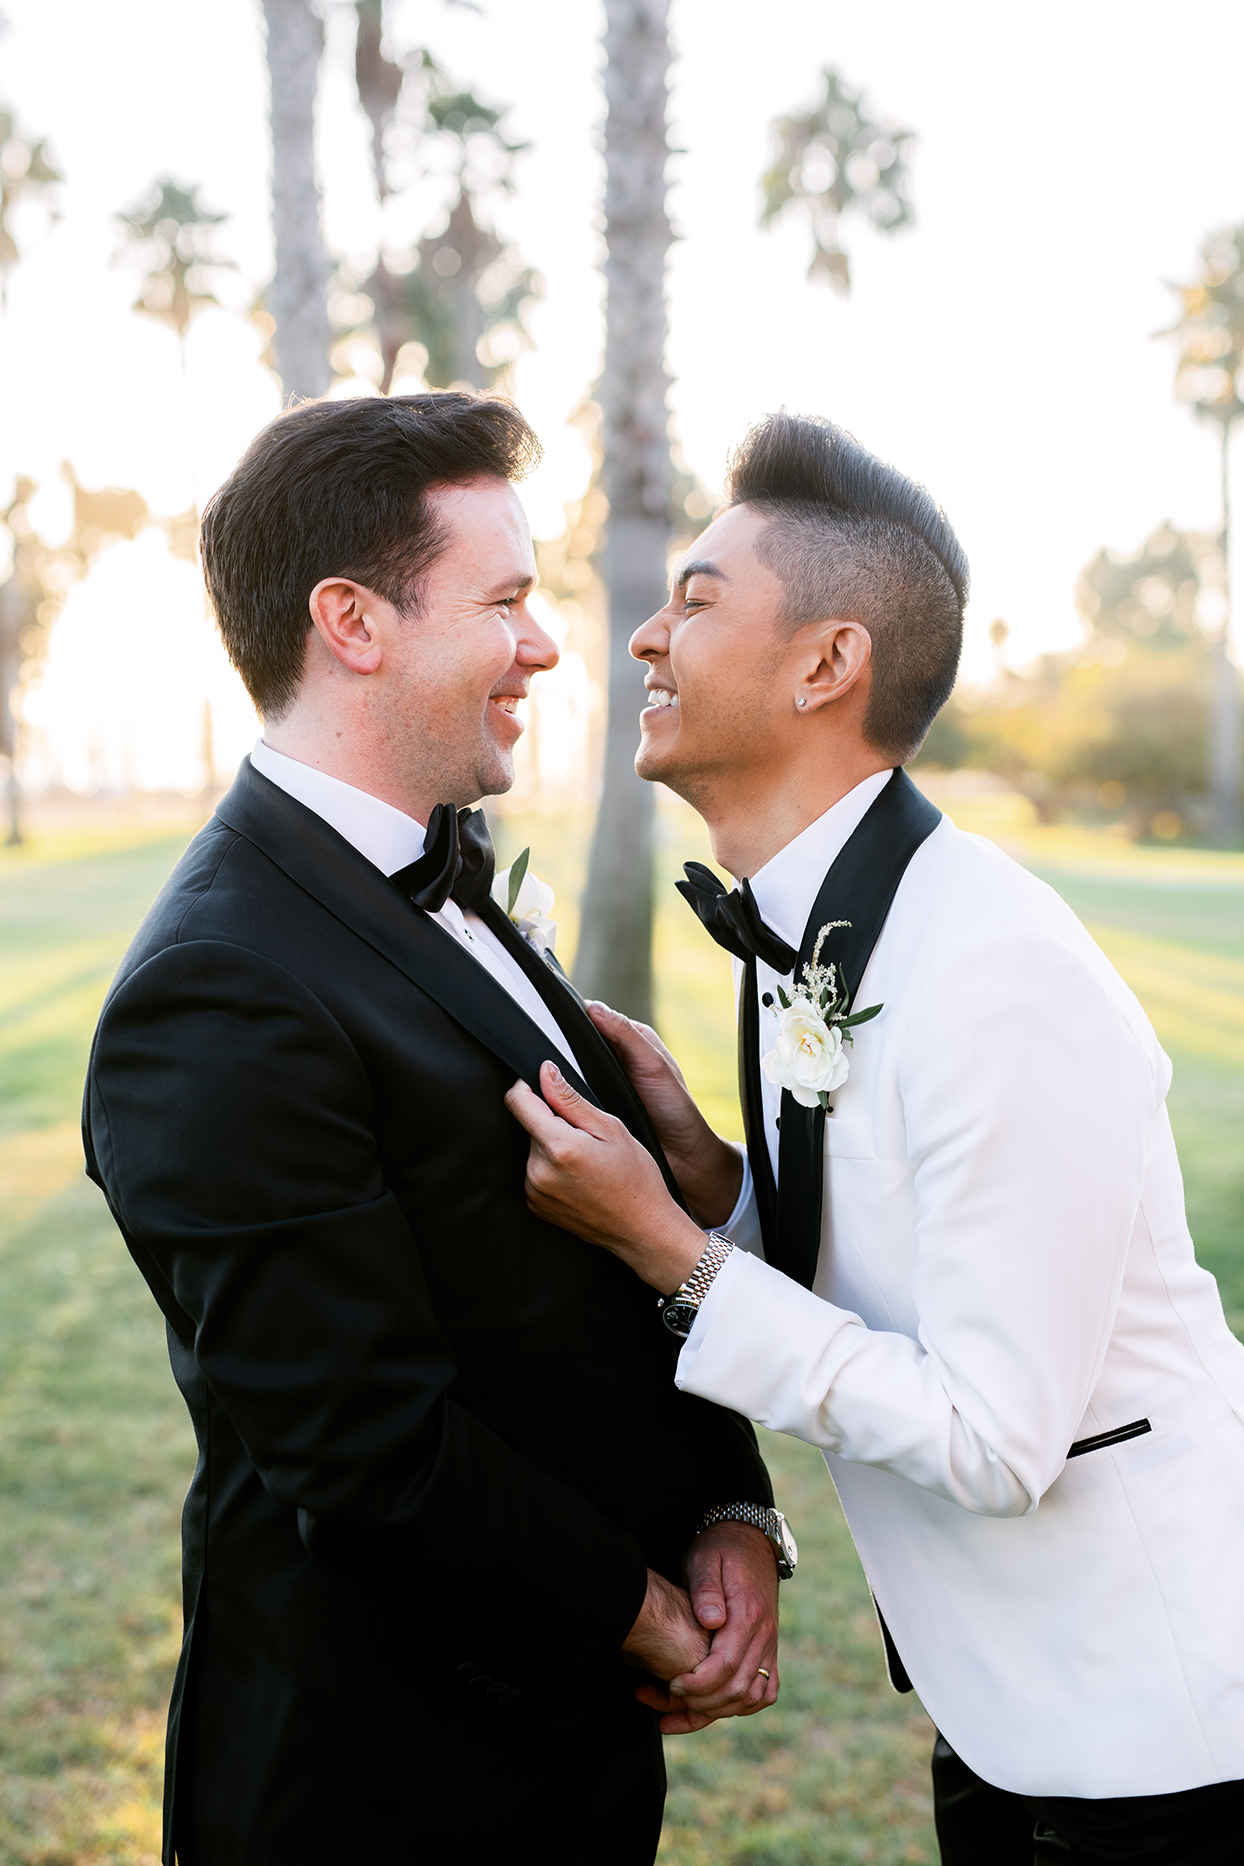 jason justing wedding couple laughing together